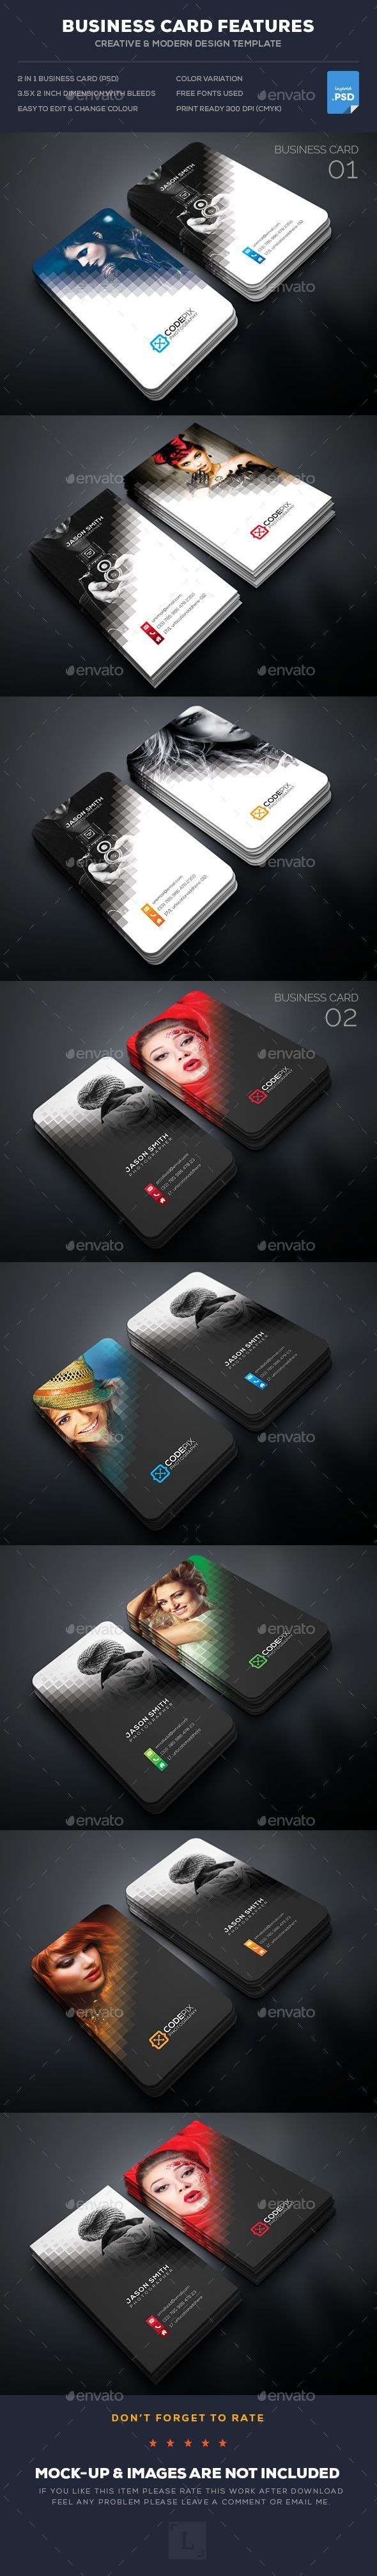 Photography Business Card Template PSD Bundle